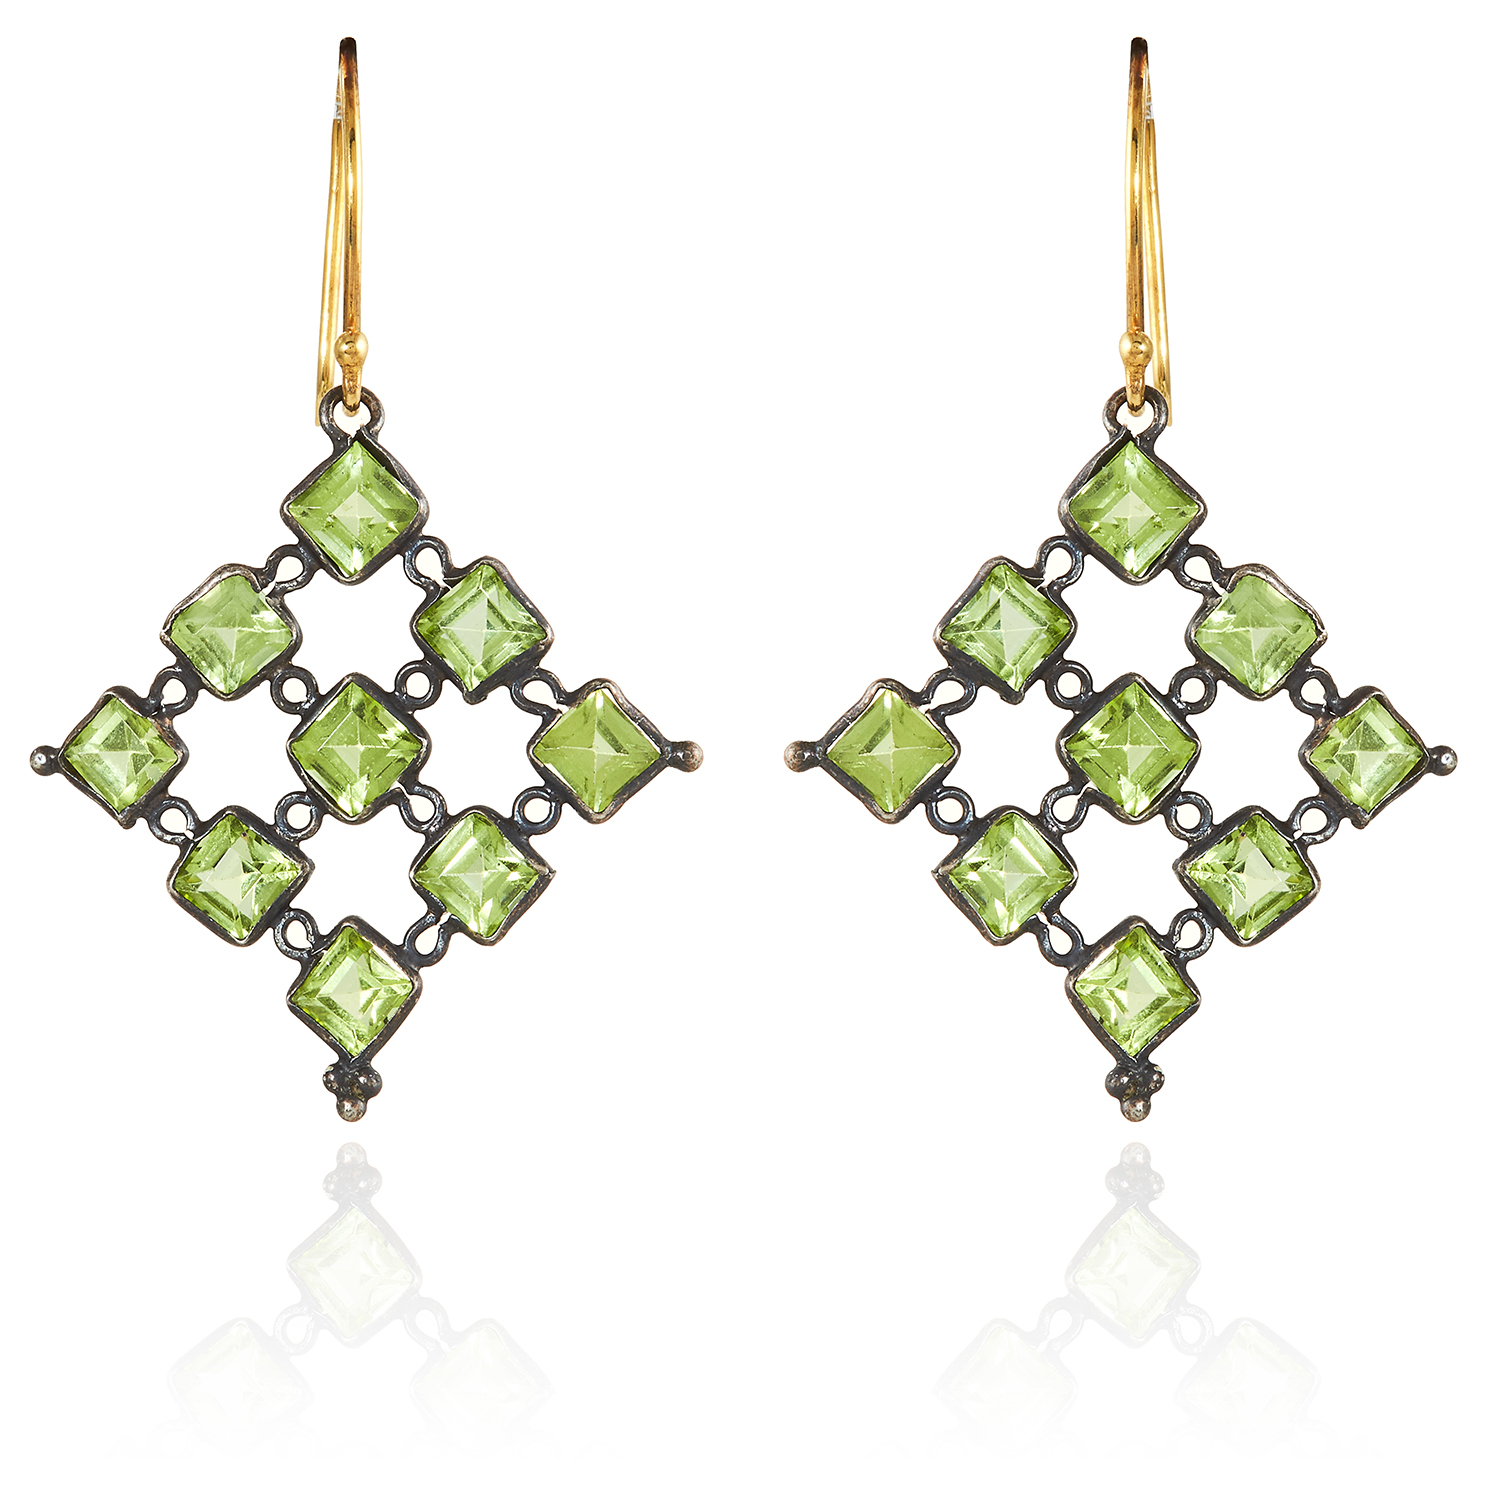 Los 330 - A PAIR OF PERIDOT EARRINGS in gold and silver of openwork design, unmarked, 4.5cm, 3.05g.